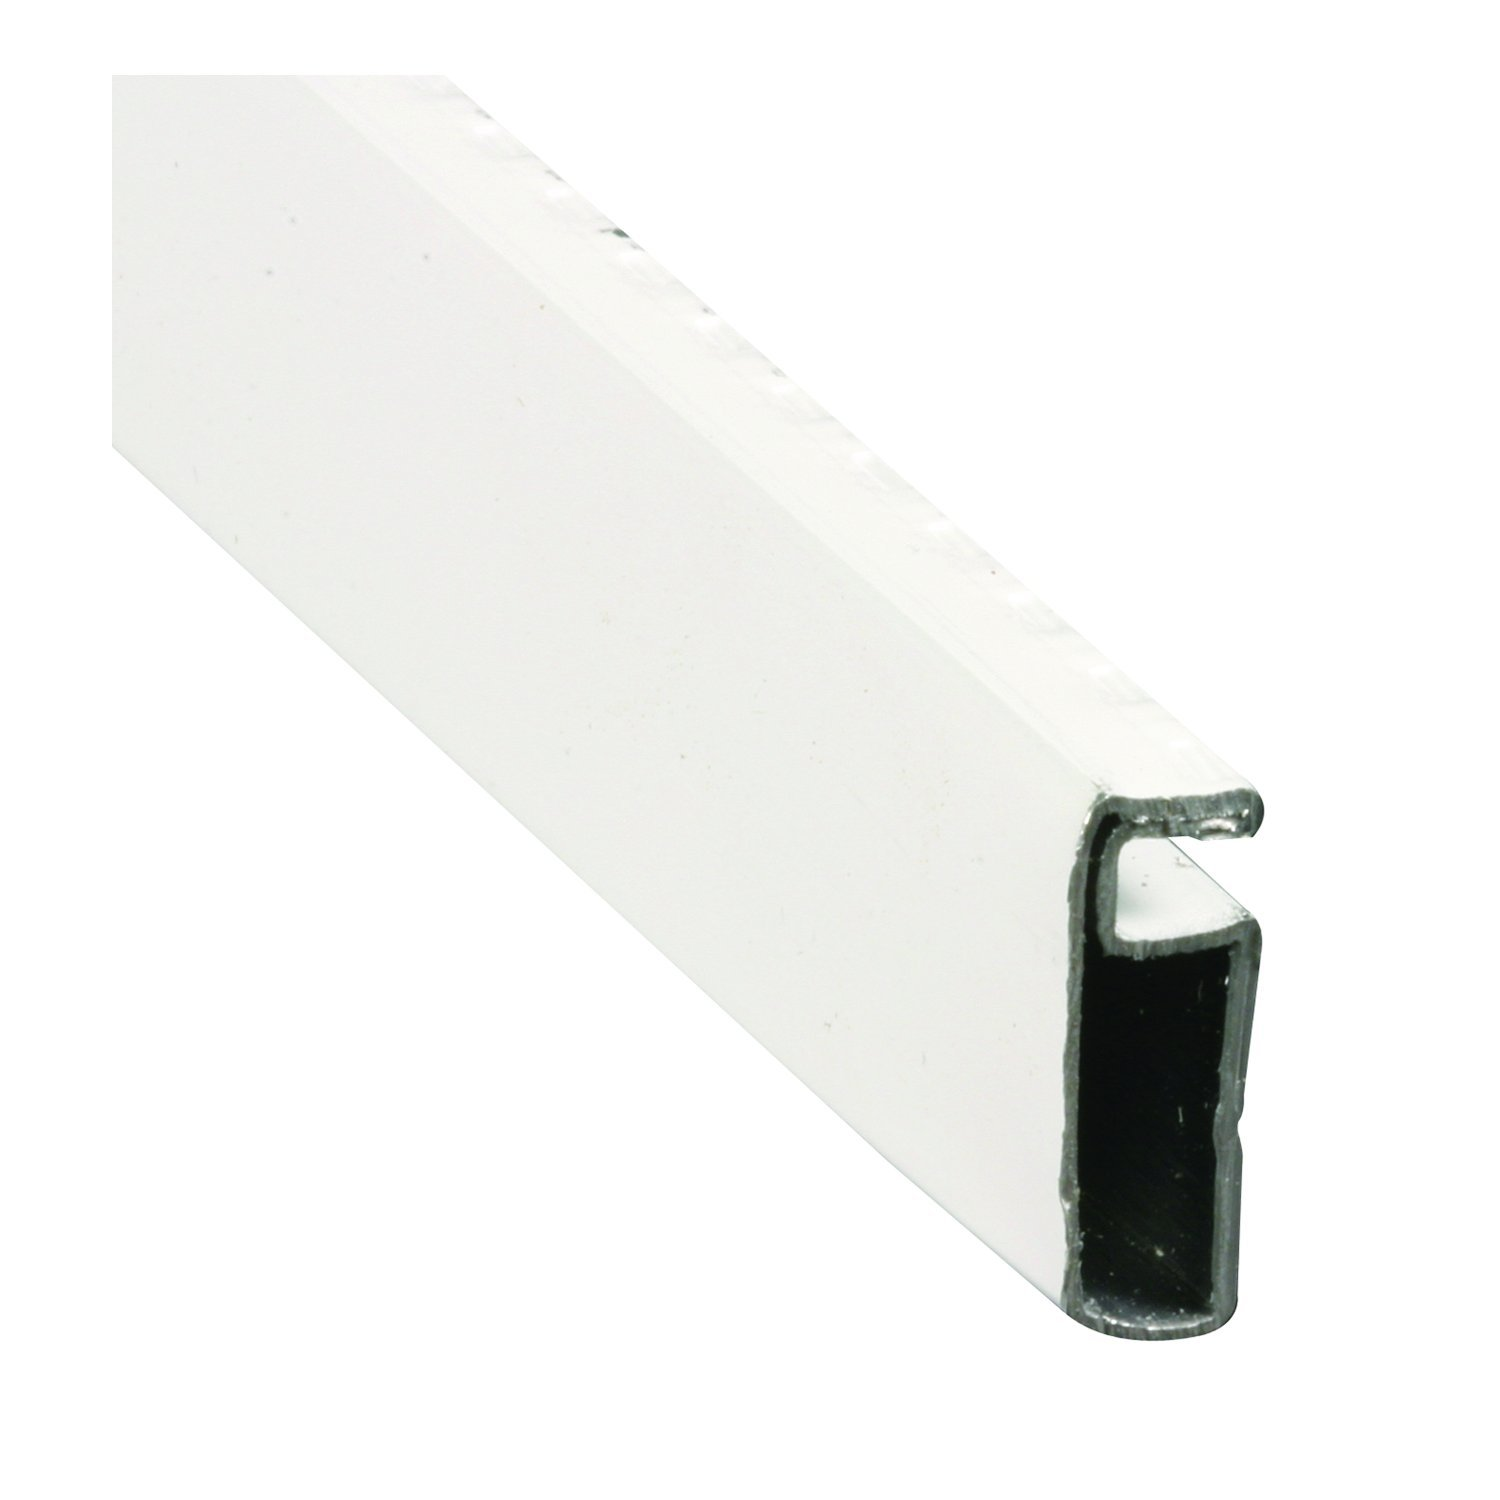 """5//16/"""" x 3//4/"""" x 72/"""" Prime-Line MP14074 Aluminum Screen Frame Cut to Size White Finish Uses 5//16/"""" x 3//4/"""" Screen Frame Corners Box of 20, 72/"""" pieces Build or Repair Window Screens"""